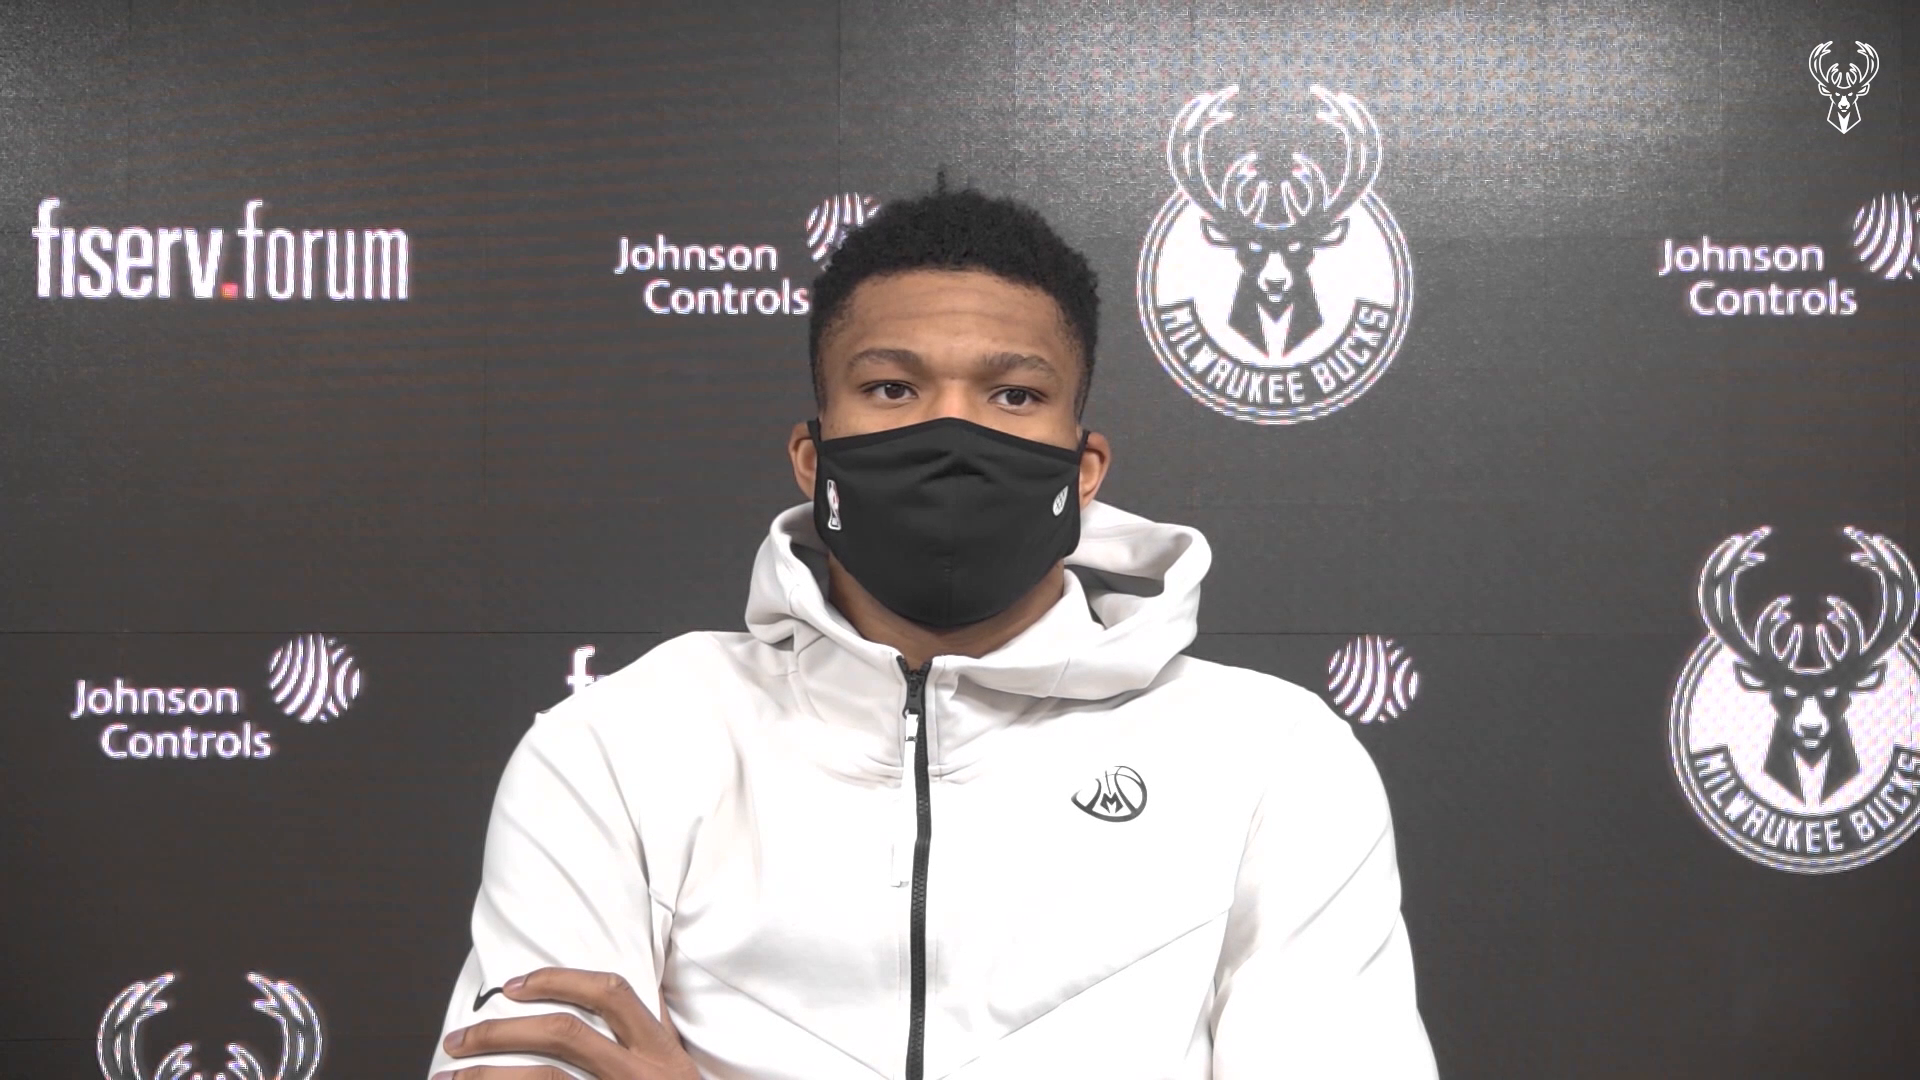 Giannis Antetokounmpo Press Conference | 1.21.21